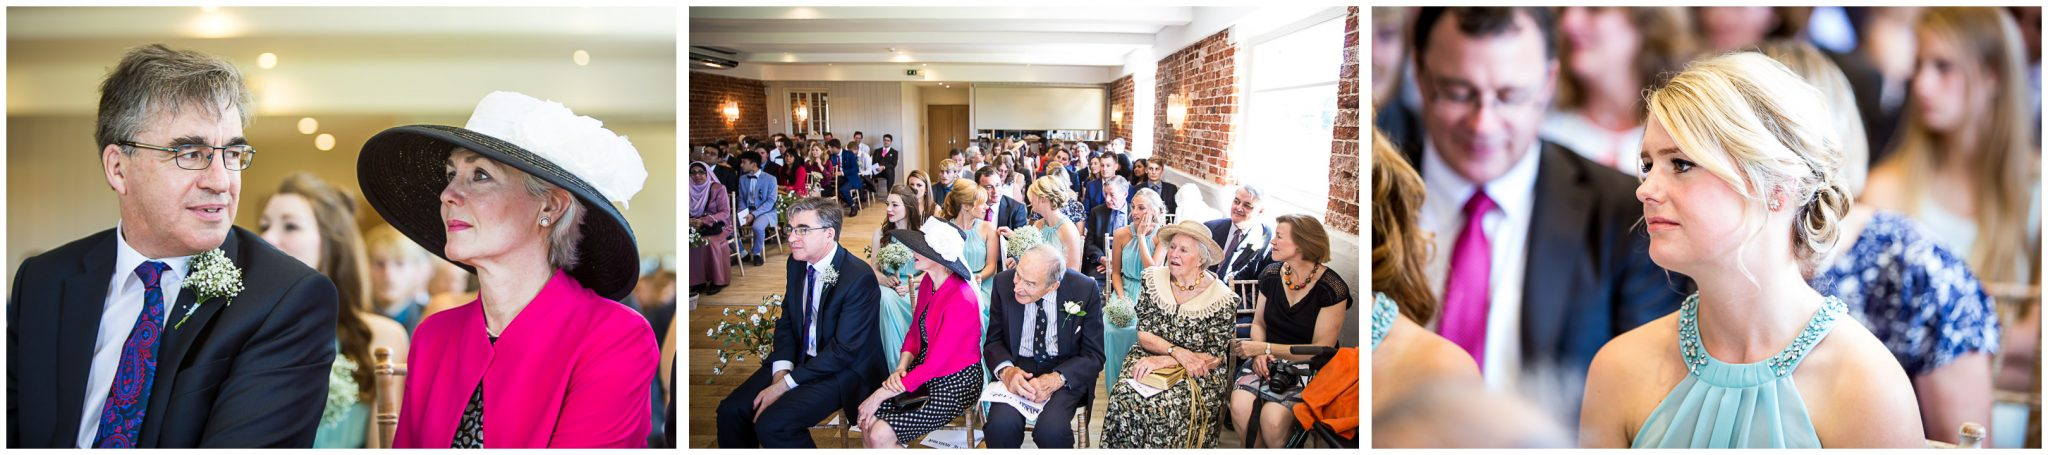 Sopley Mill Summer wedding guests watch signing of register